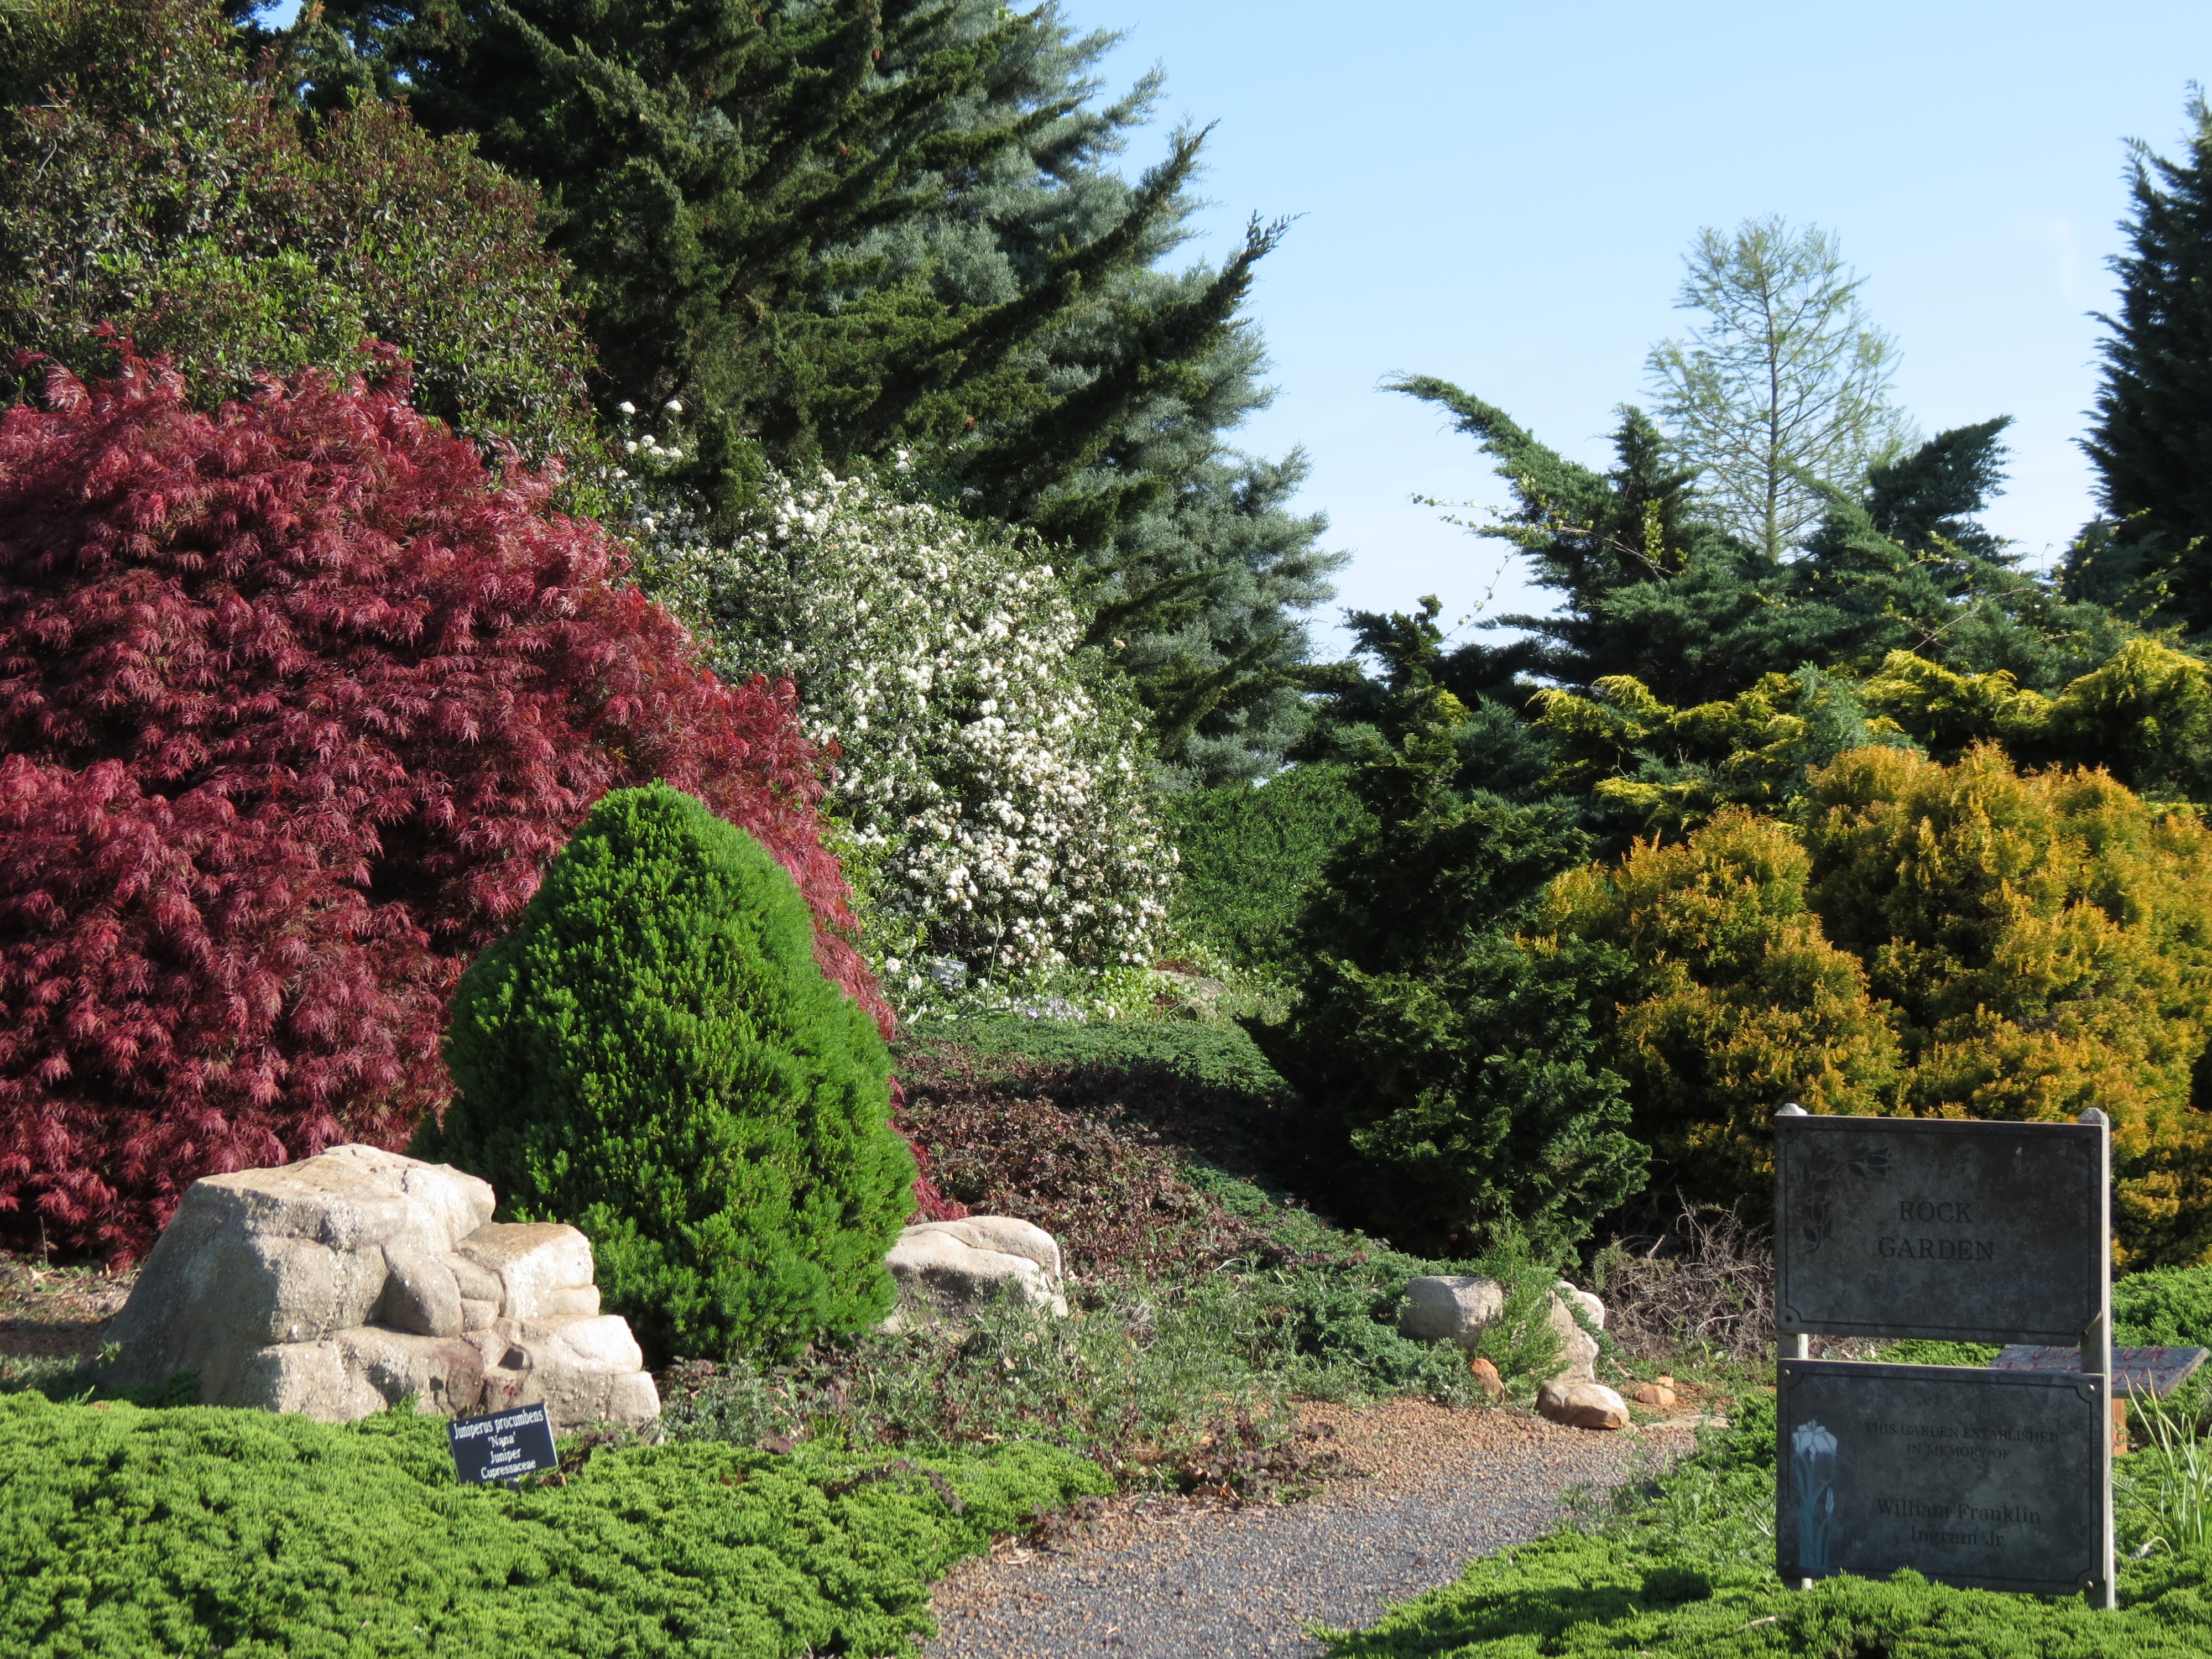 Evergreen and deciduous plants of different colors and forms can be used together to create a visually appealing landscape.